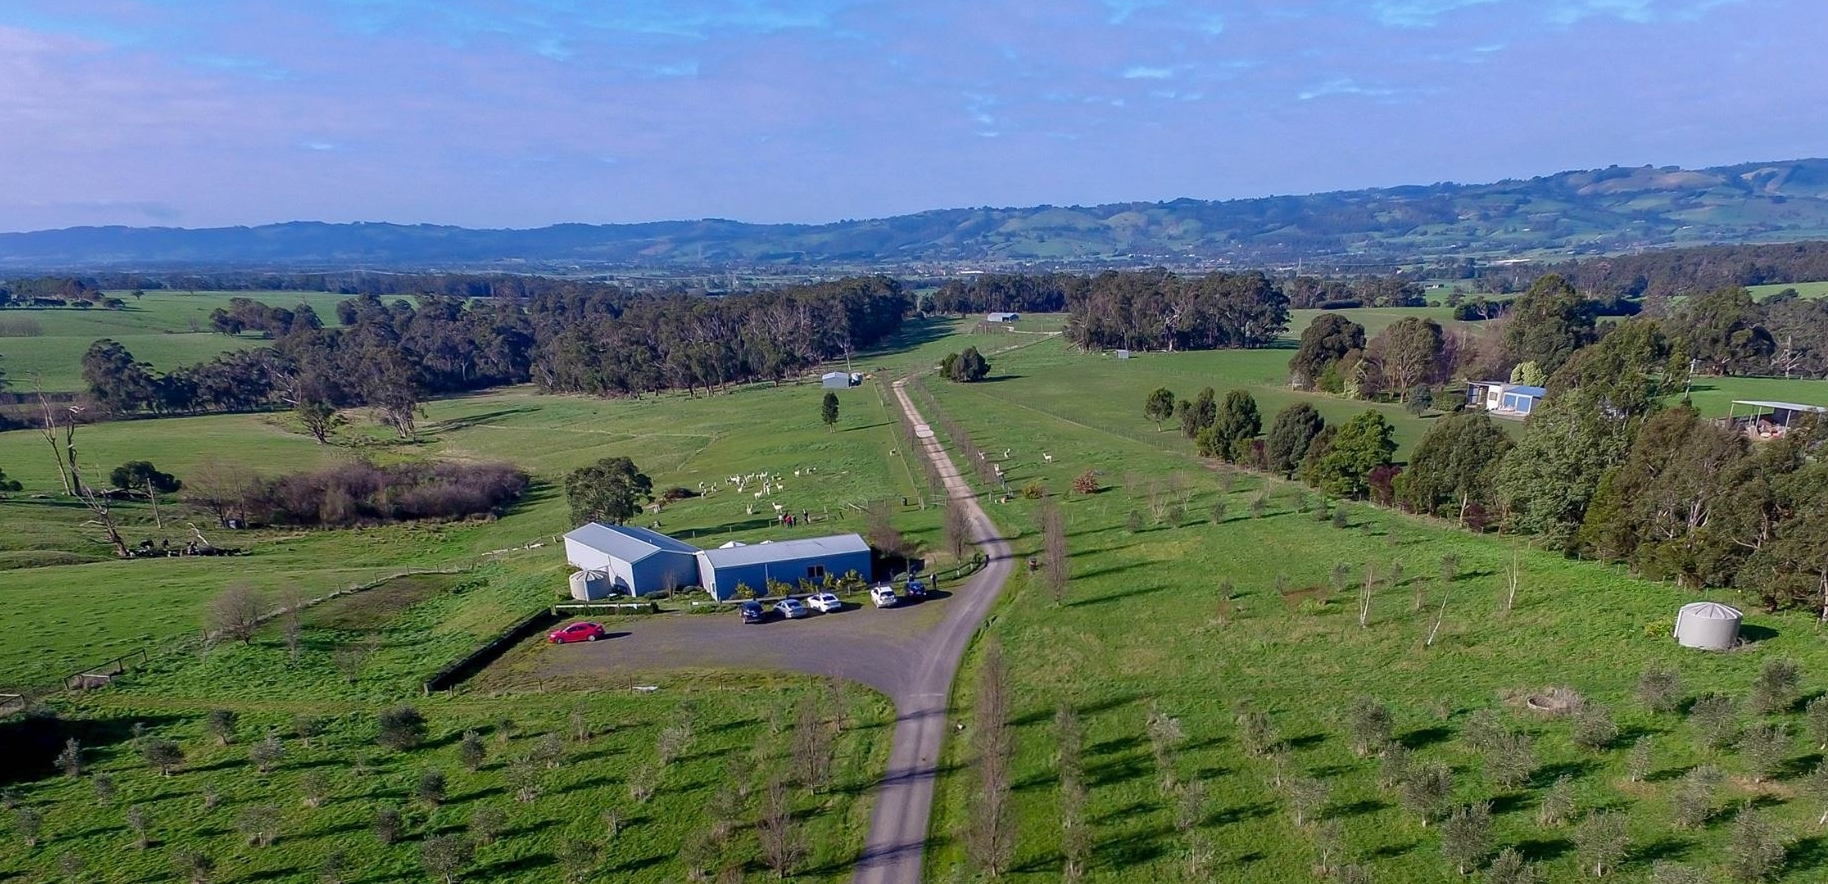 Aerial View of Nickelby At Darnum; part olive grove, shop, section of the farm and the Strzelecki Ranges